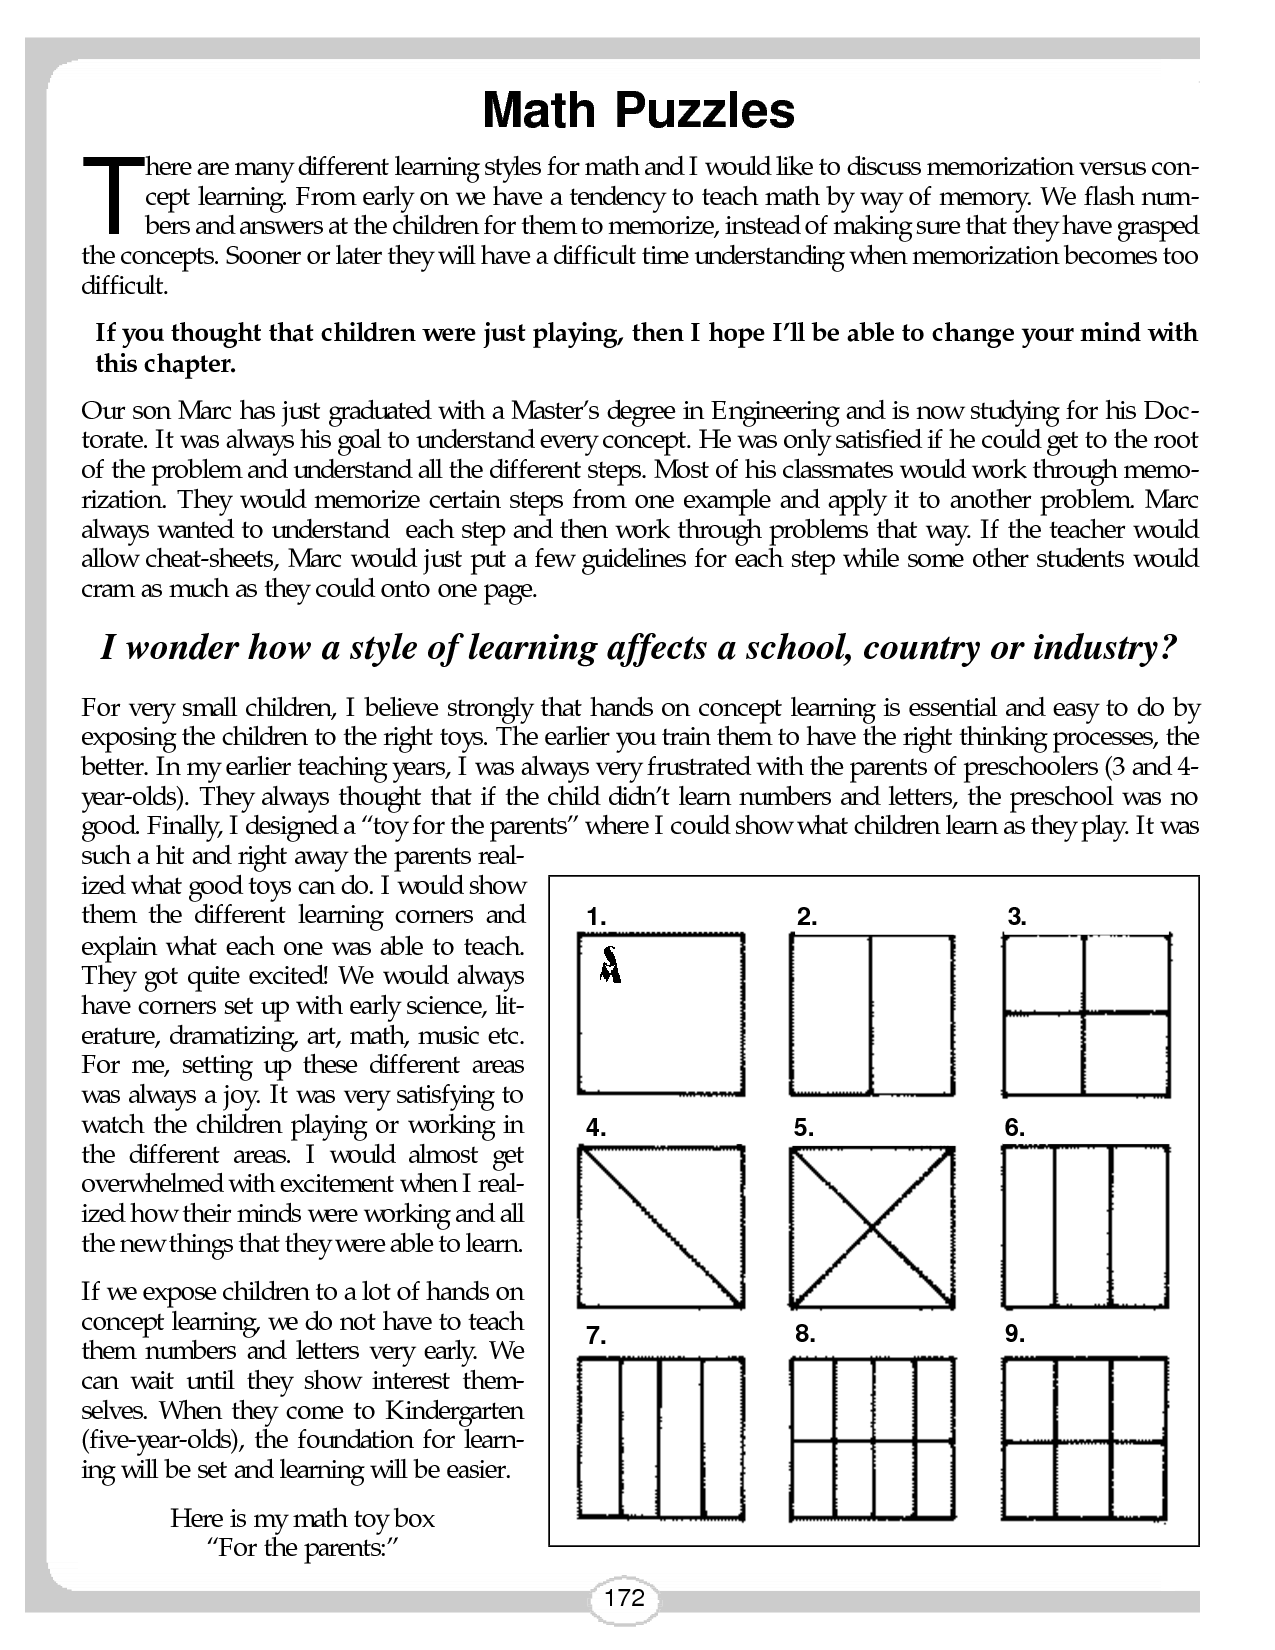 Worksheet 14321051 Fun Math Puzzle Worksheets for Middle School – Fun Math Puzzle Worksheets